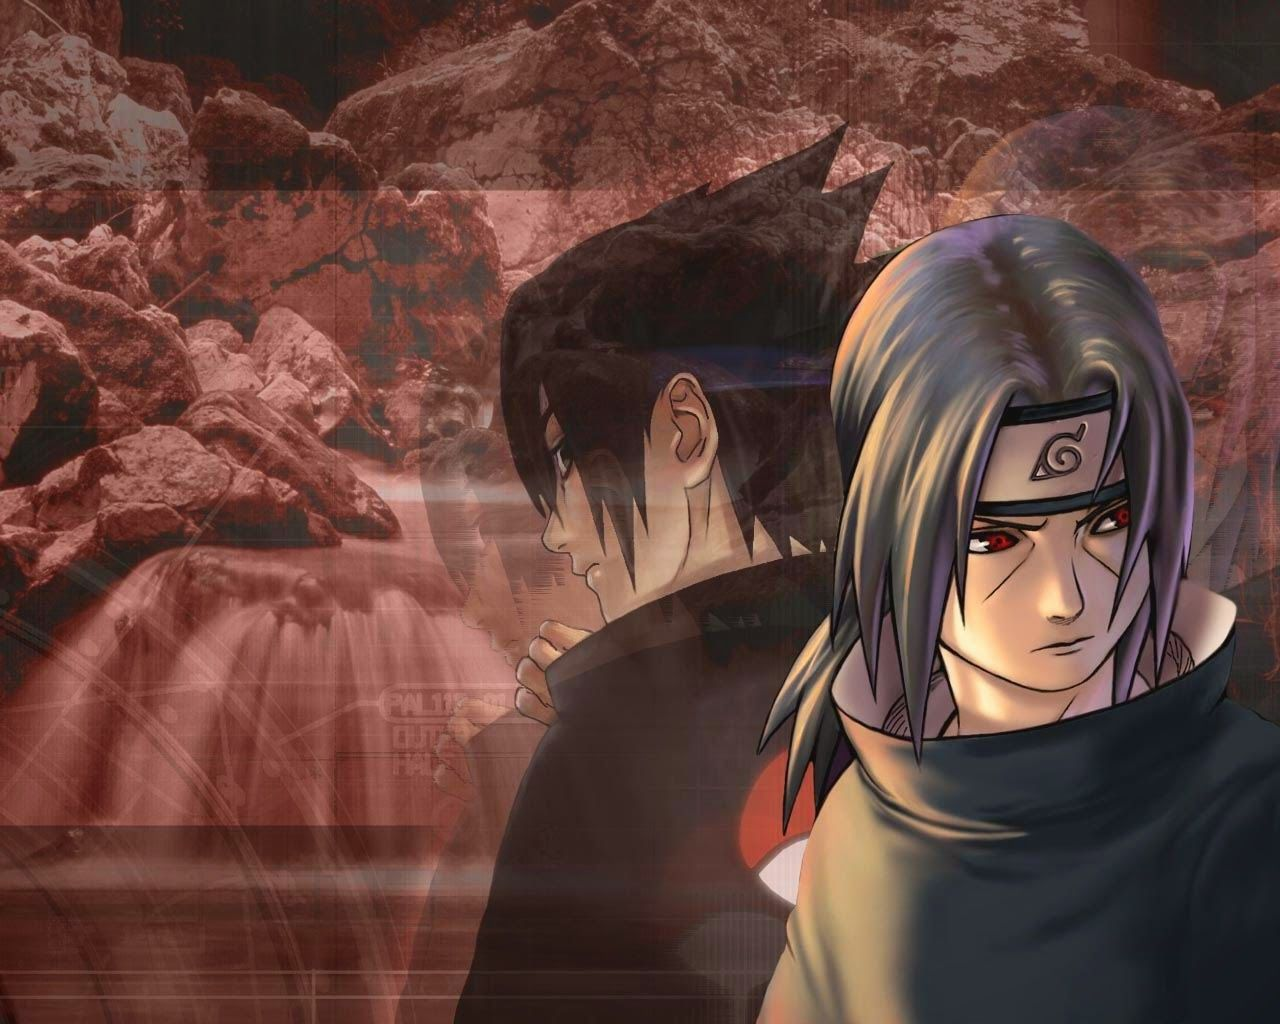 Anime Manga Wallpaper Gratis Sasuke and Itachi Wallpaper